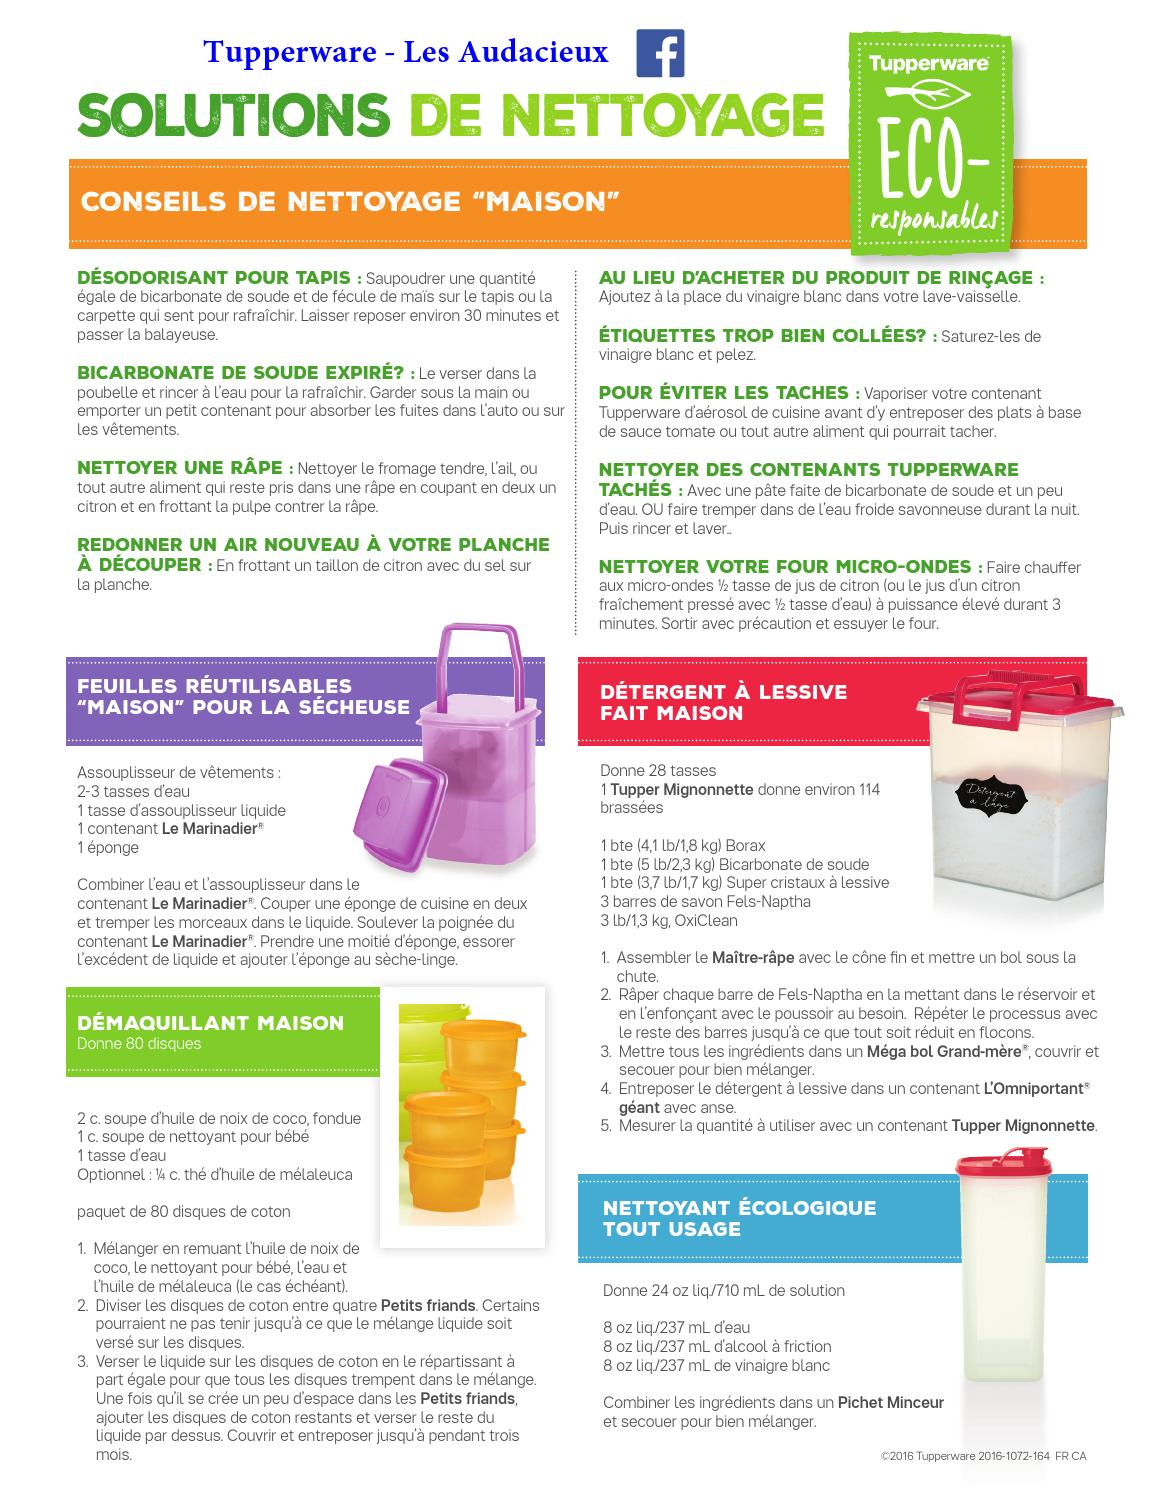 Solutions De Nettoyage Eco By Tupperware Les Audacieux Issuu